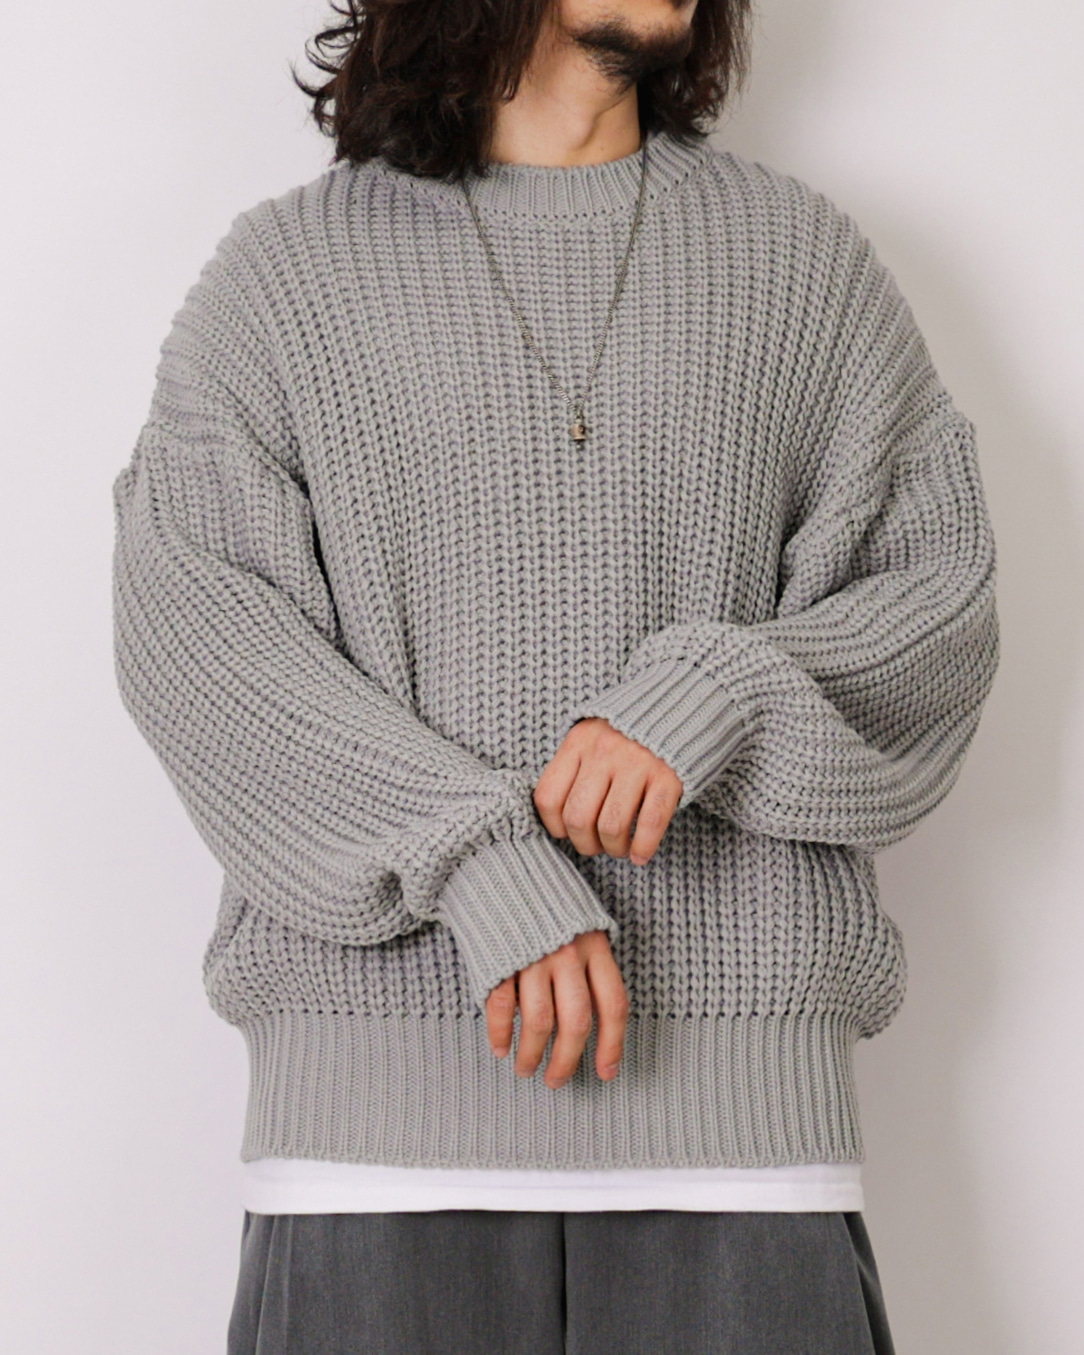 Loose Over Warmer Knit (Black/Charcoal/Gray)